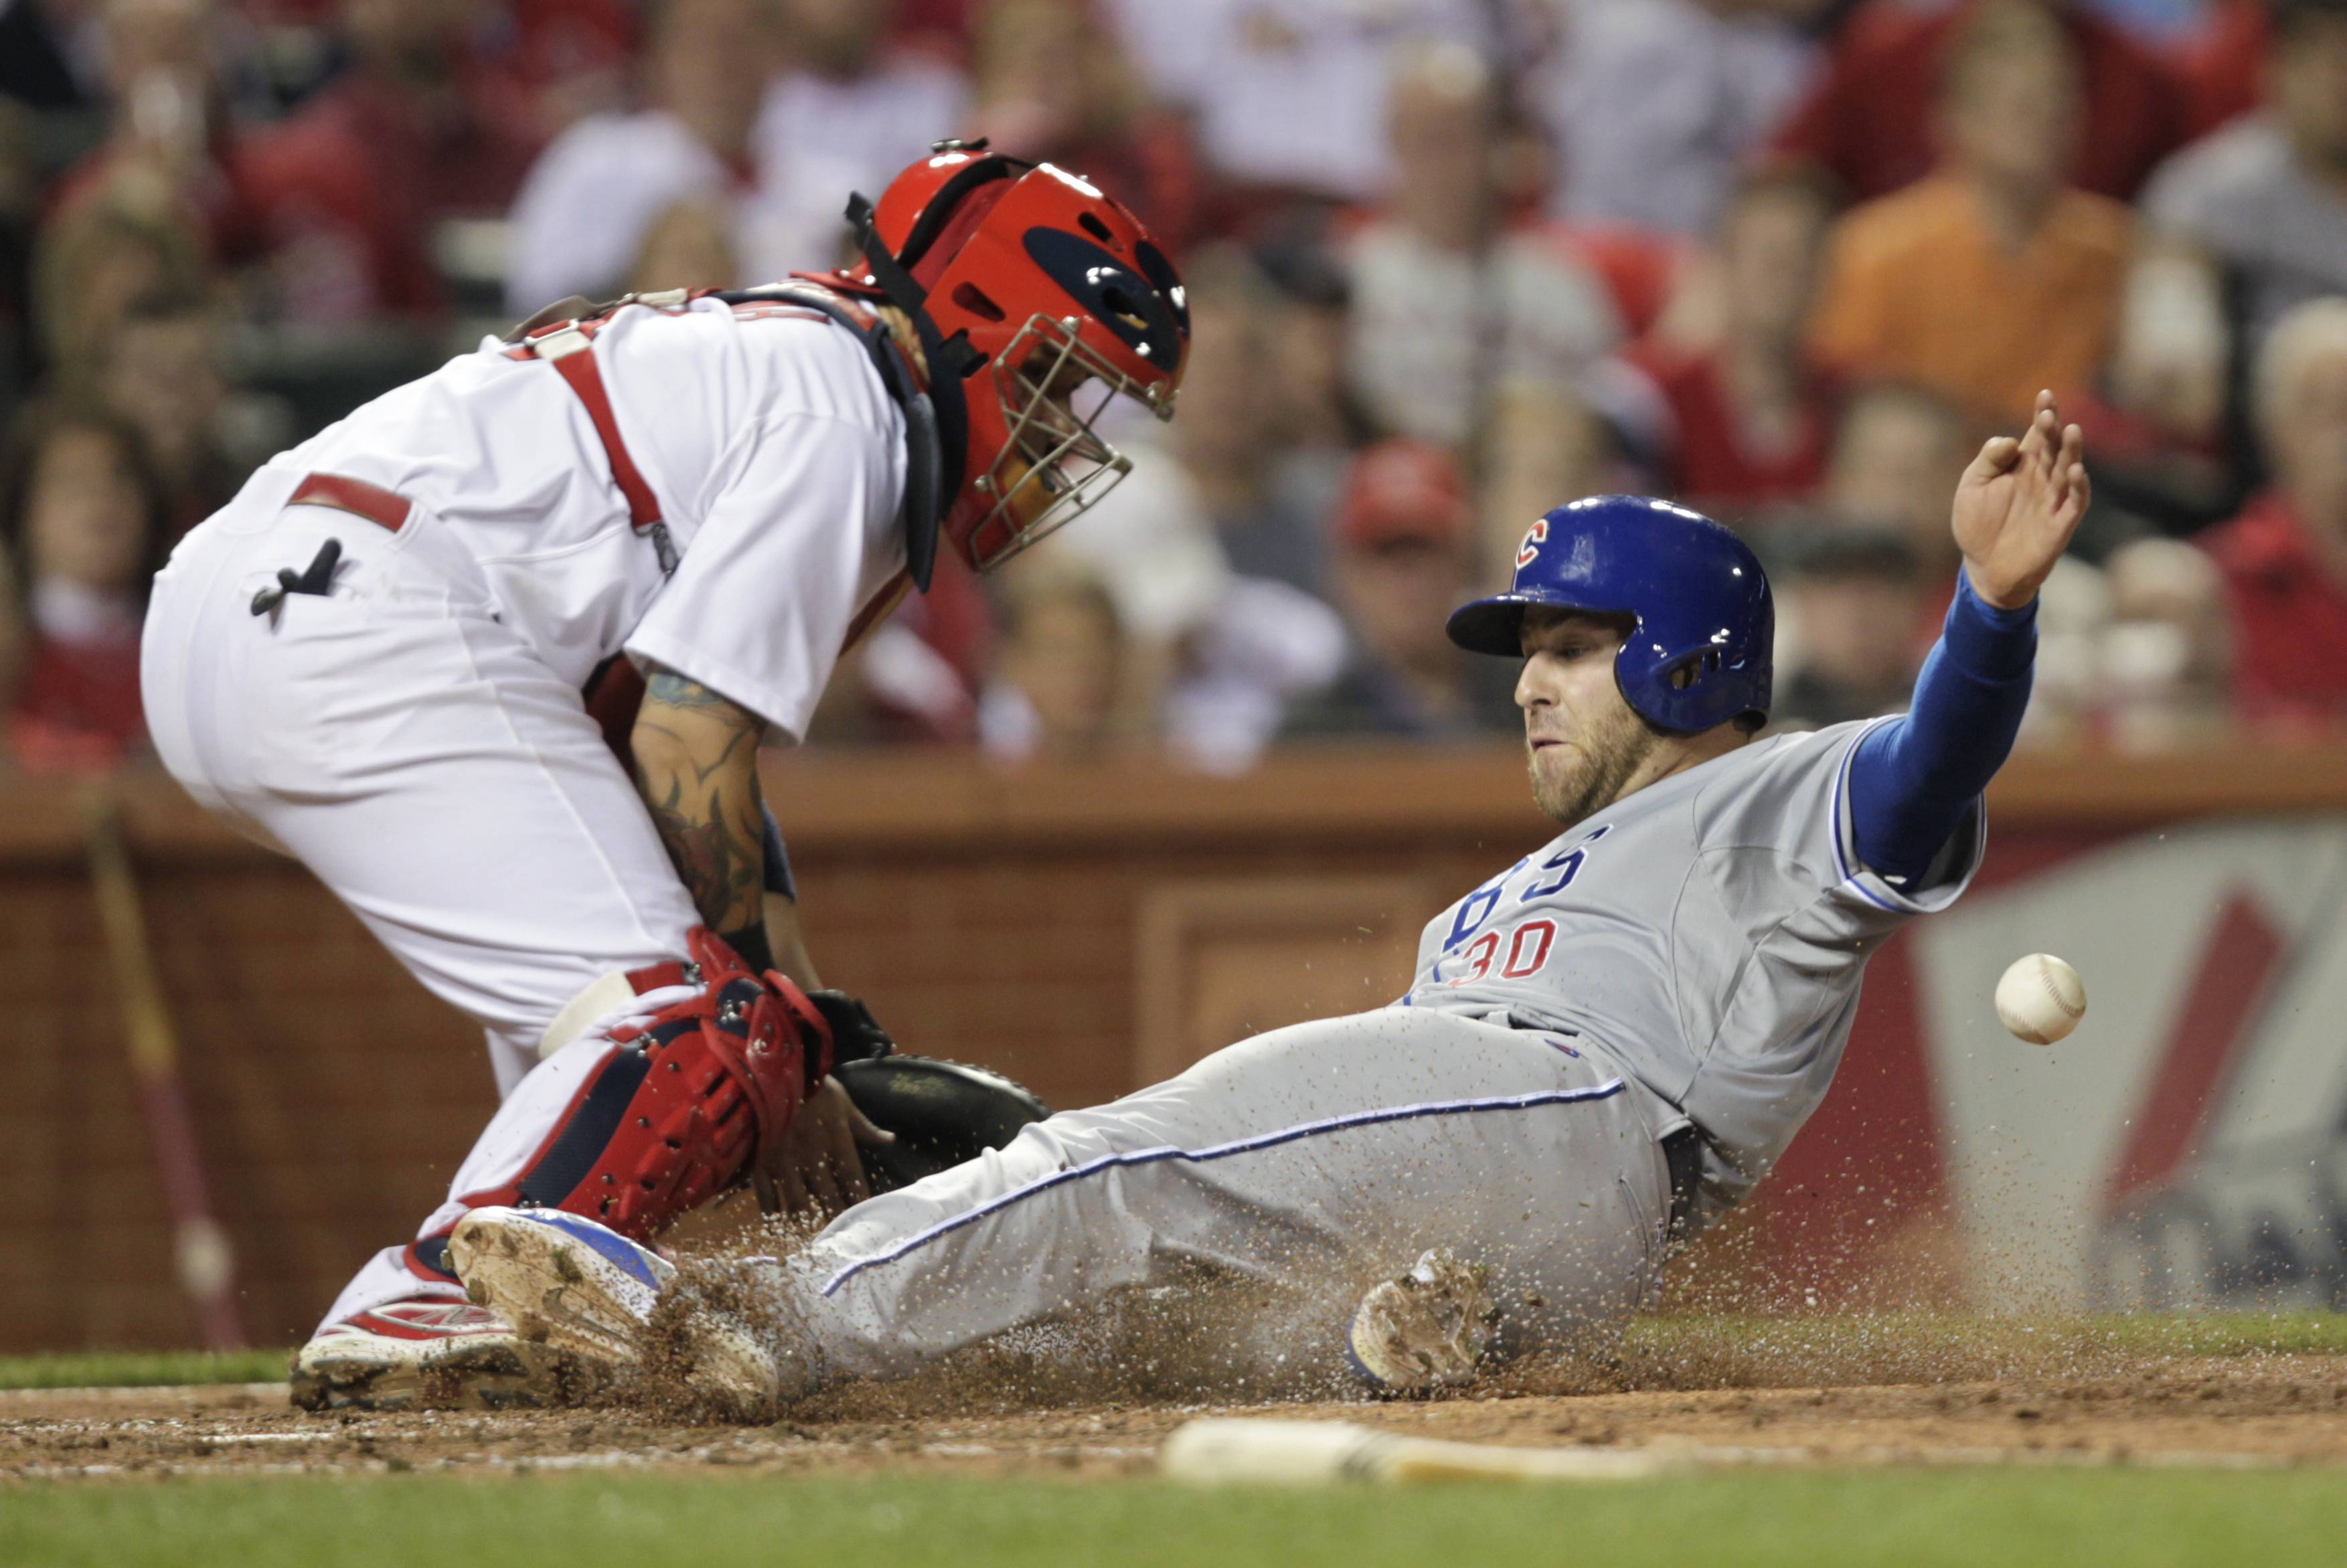 Cubs' Mike Olt (30) scores on a single by Nate Schierholtz as St. Louis Cardinals' Yadier Molina (4) waits for an off-target throw in the eighth inning of a baseball game, Friday, April 11, 2014, in St. Louis.